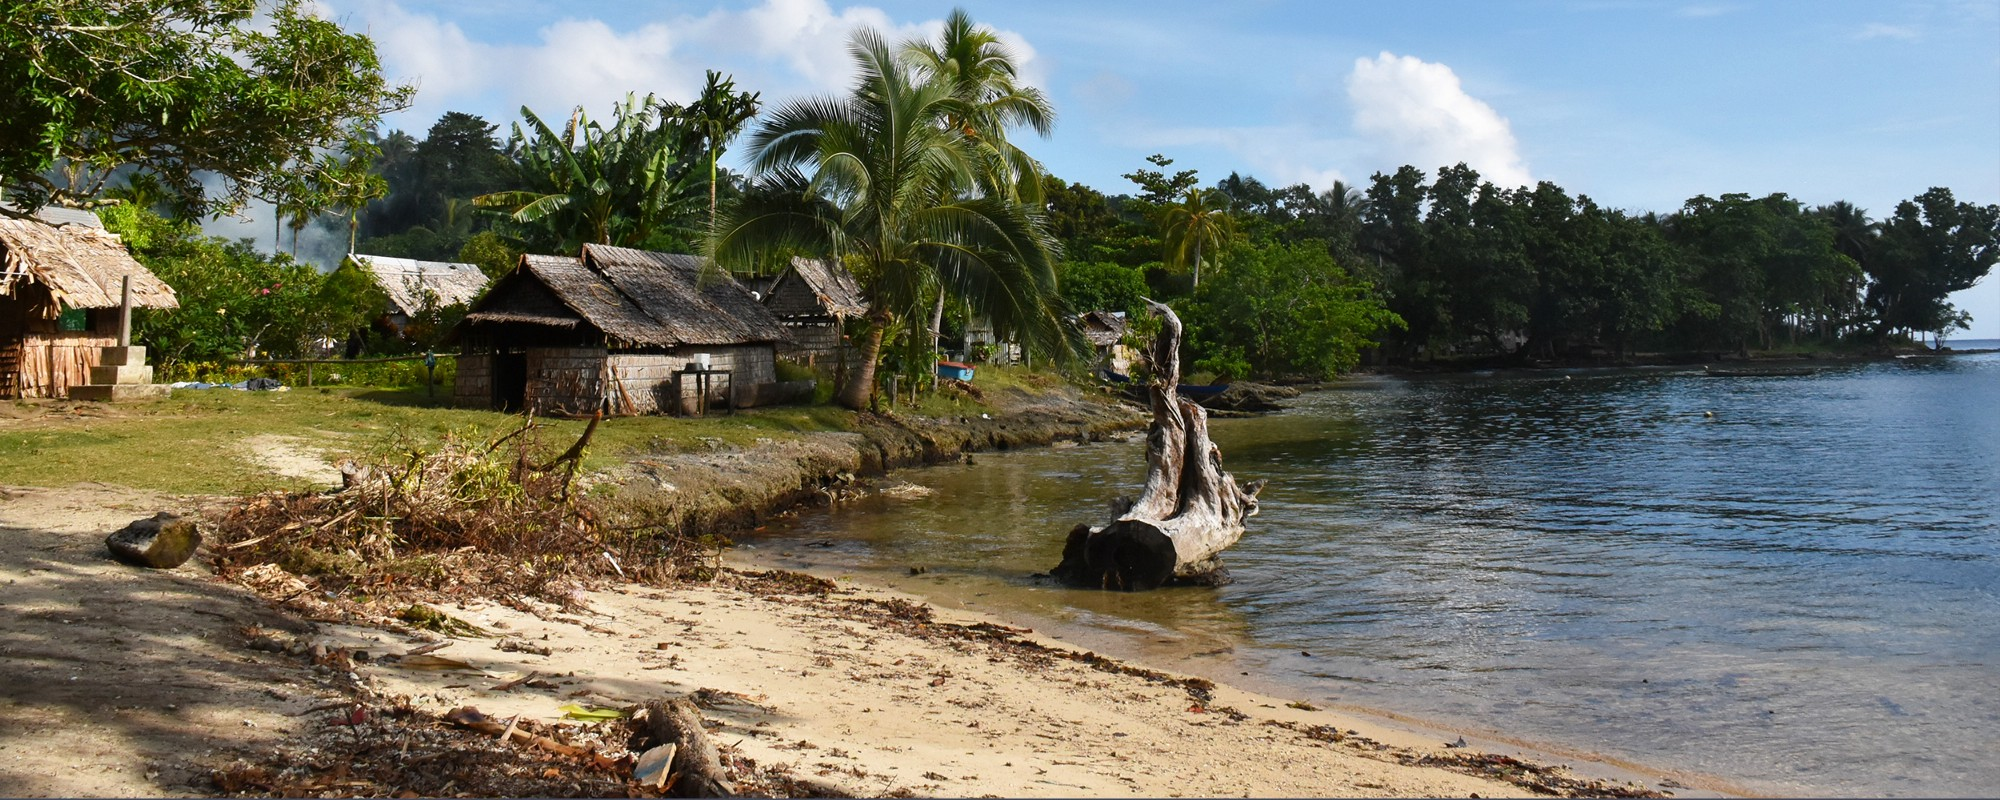 surviving the 2007 tsunami in the solomon islands durie